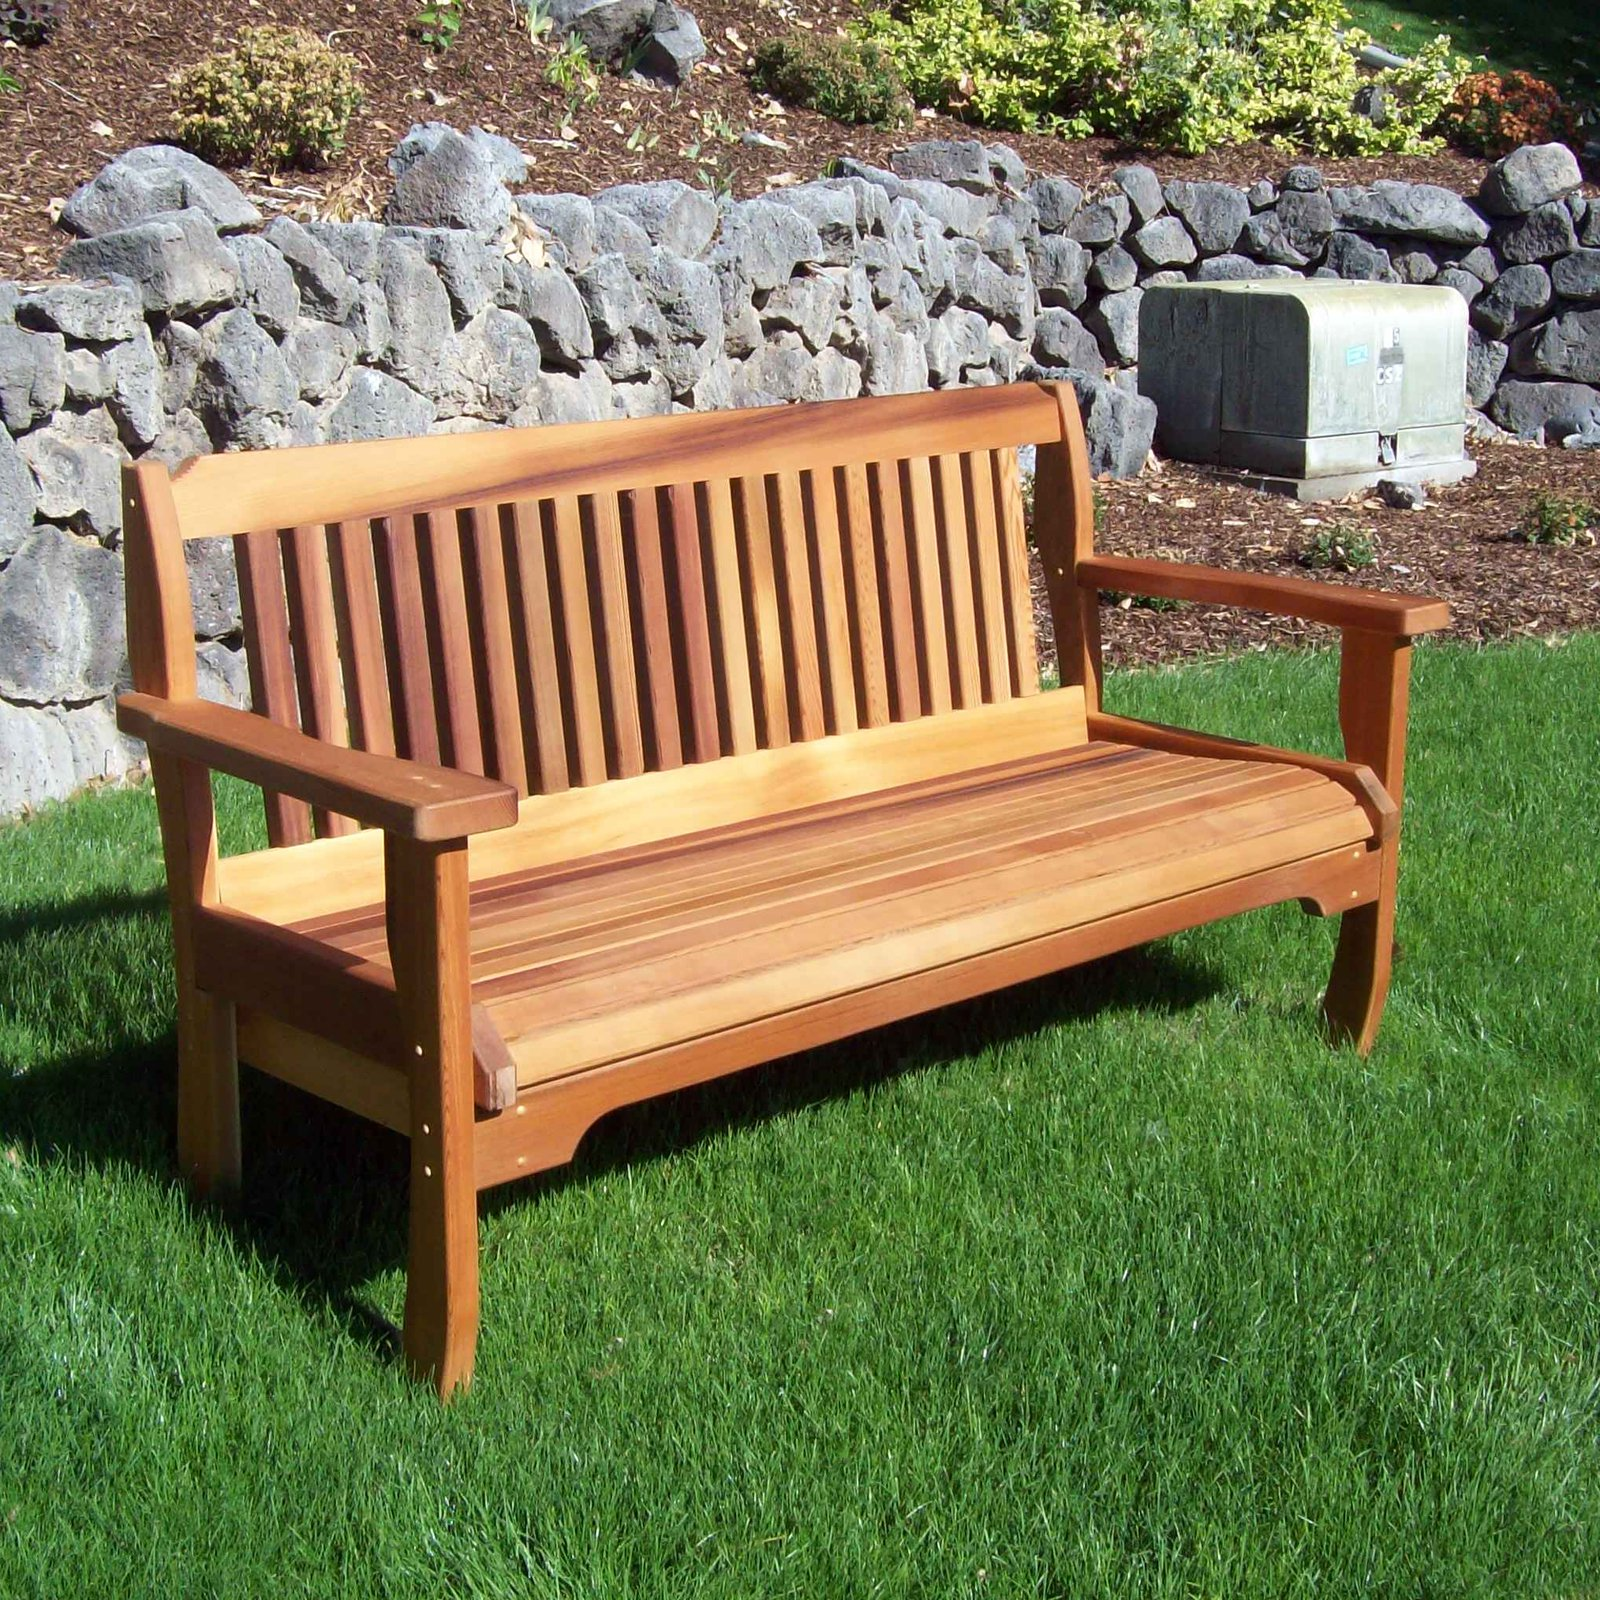 Wood Country Cabbage Hill Solid Cedar Garden Bench by Wood Country